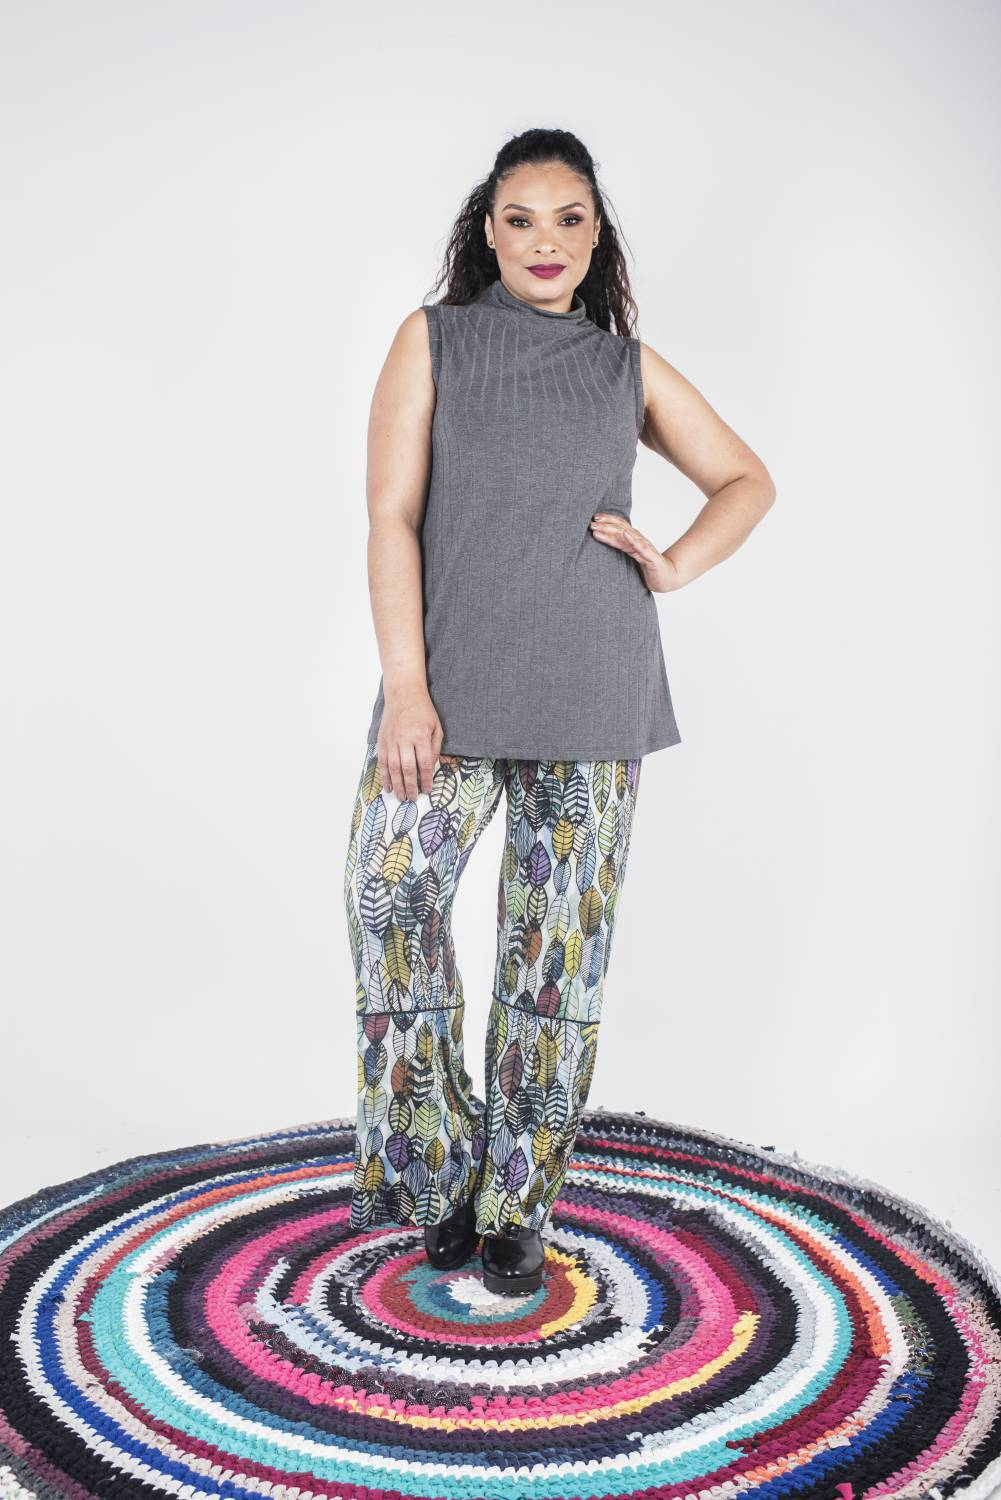 ENCOMENDAS PREVIEW – REGATA PLUS SIZE SOLTINHA COM GOLA ALTA